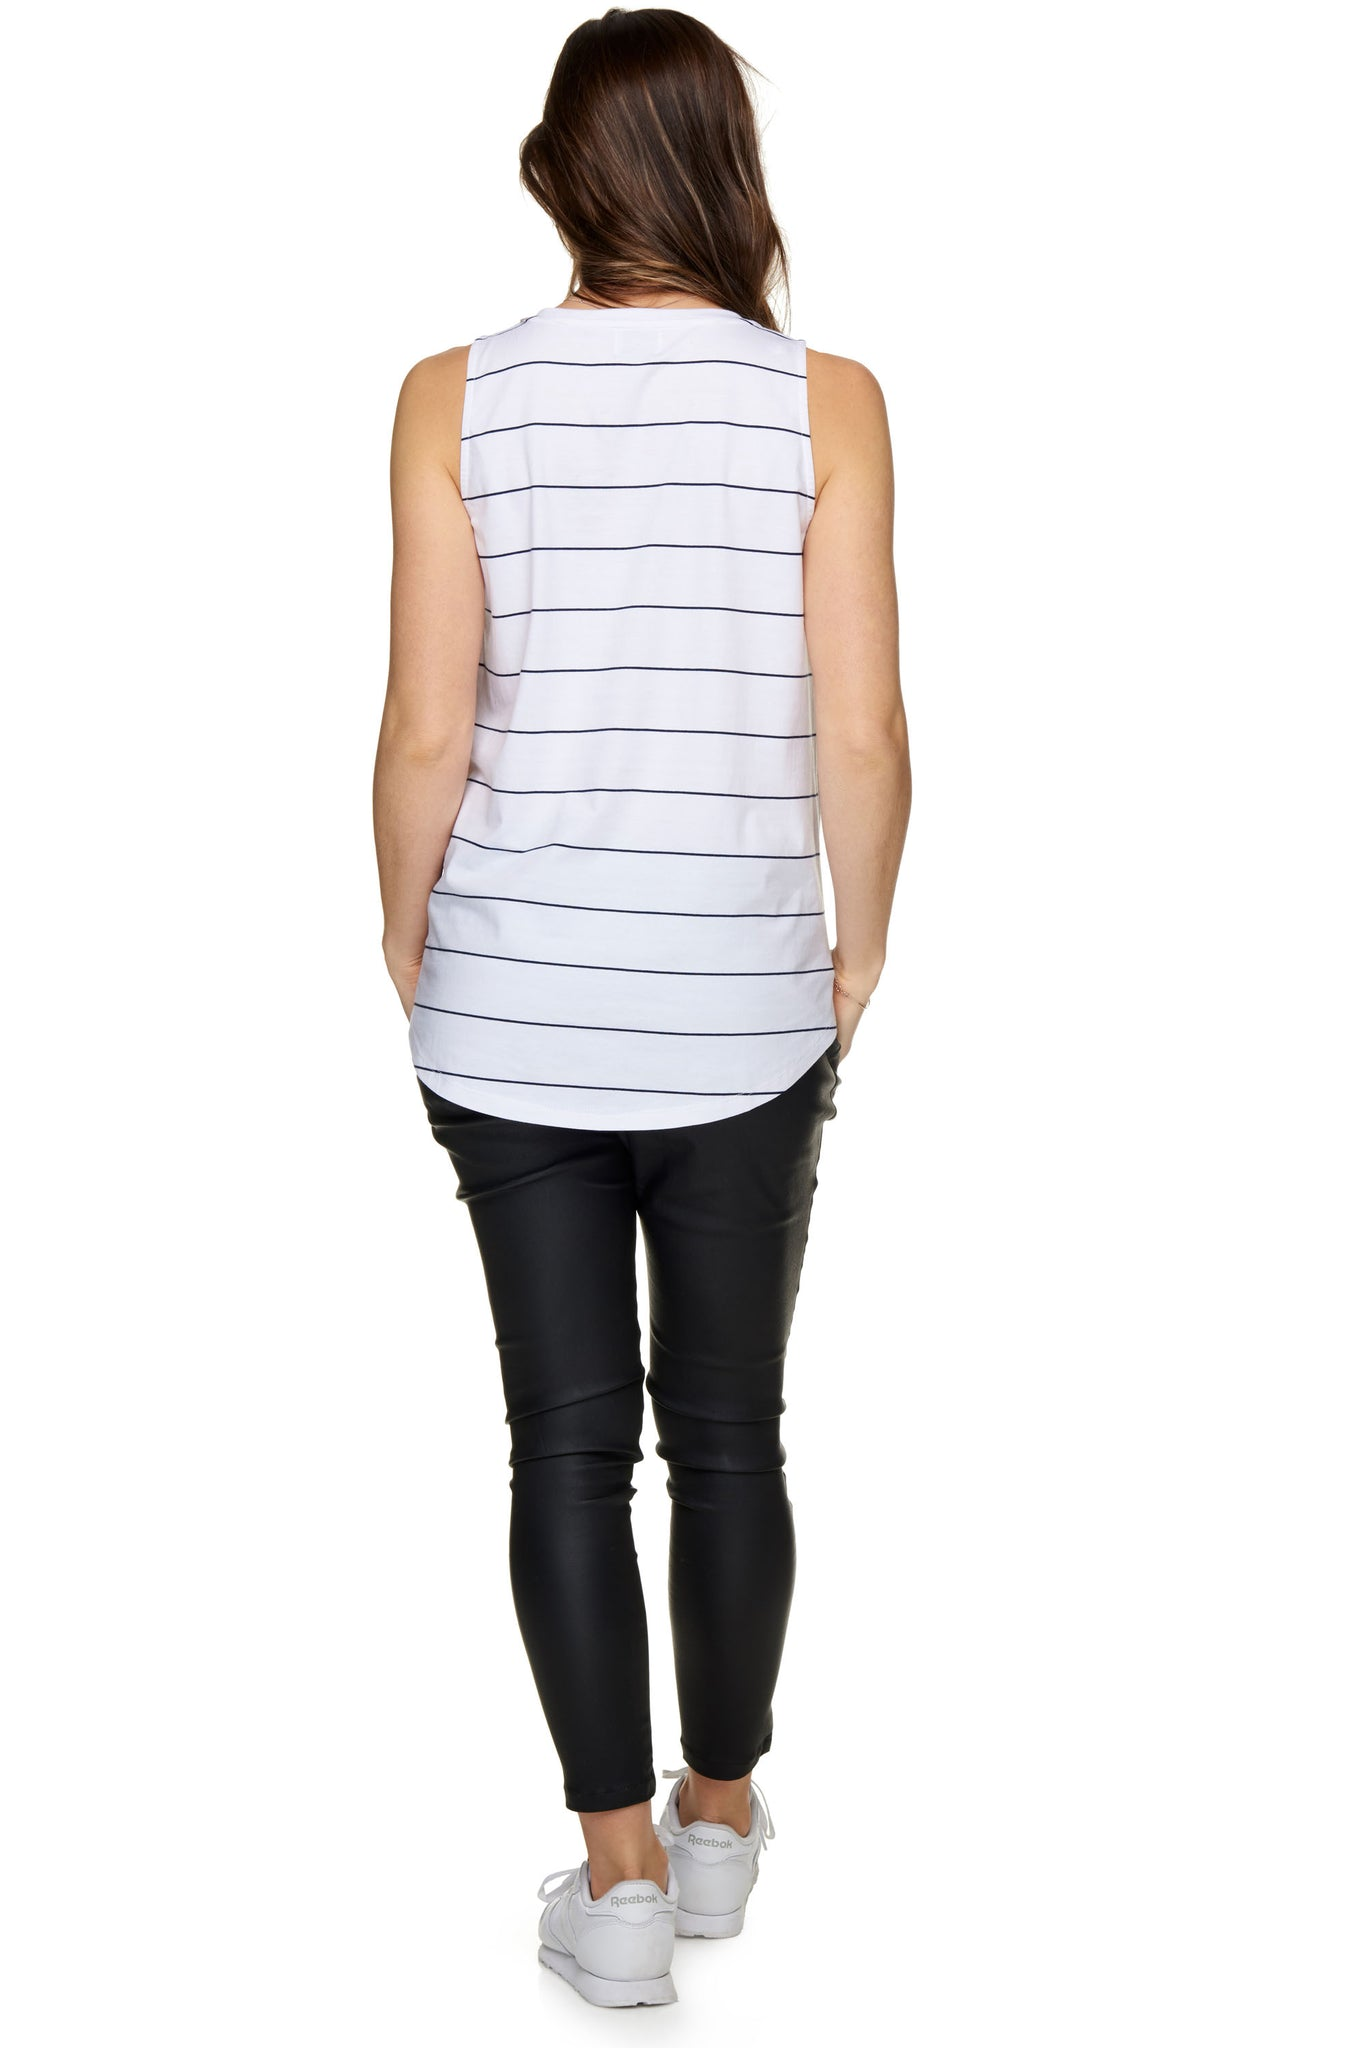 Maternity + Nursing Tank Top - White Stripe 3